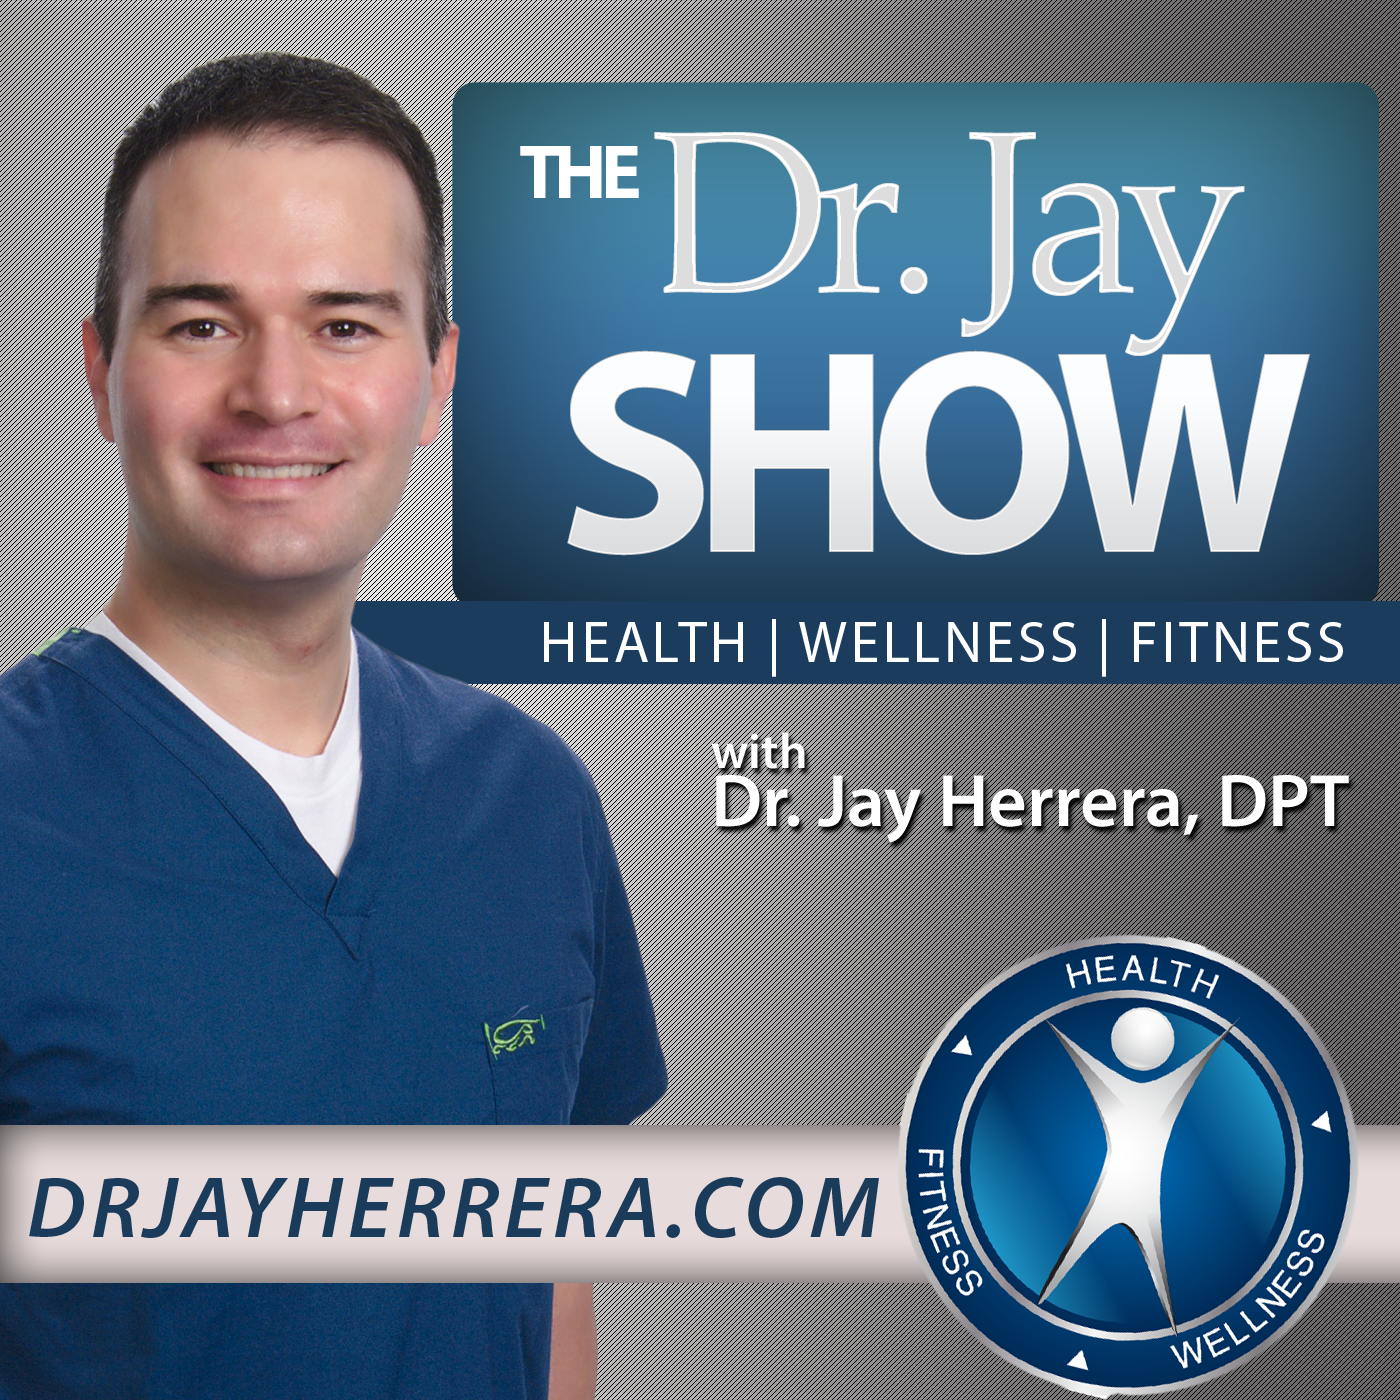 The Dr. Jay Show